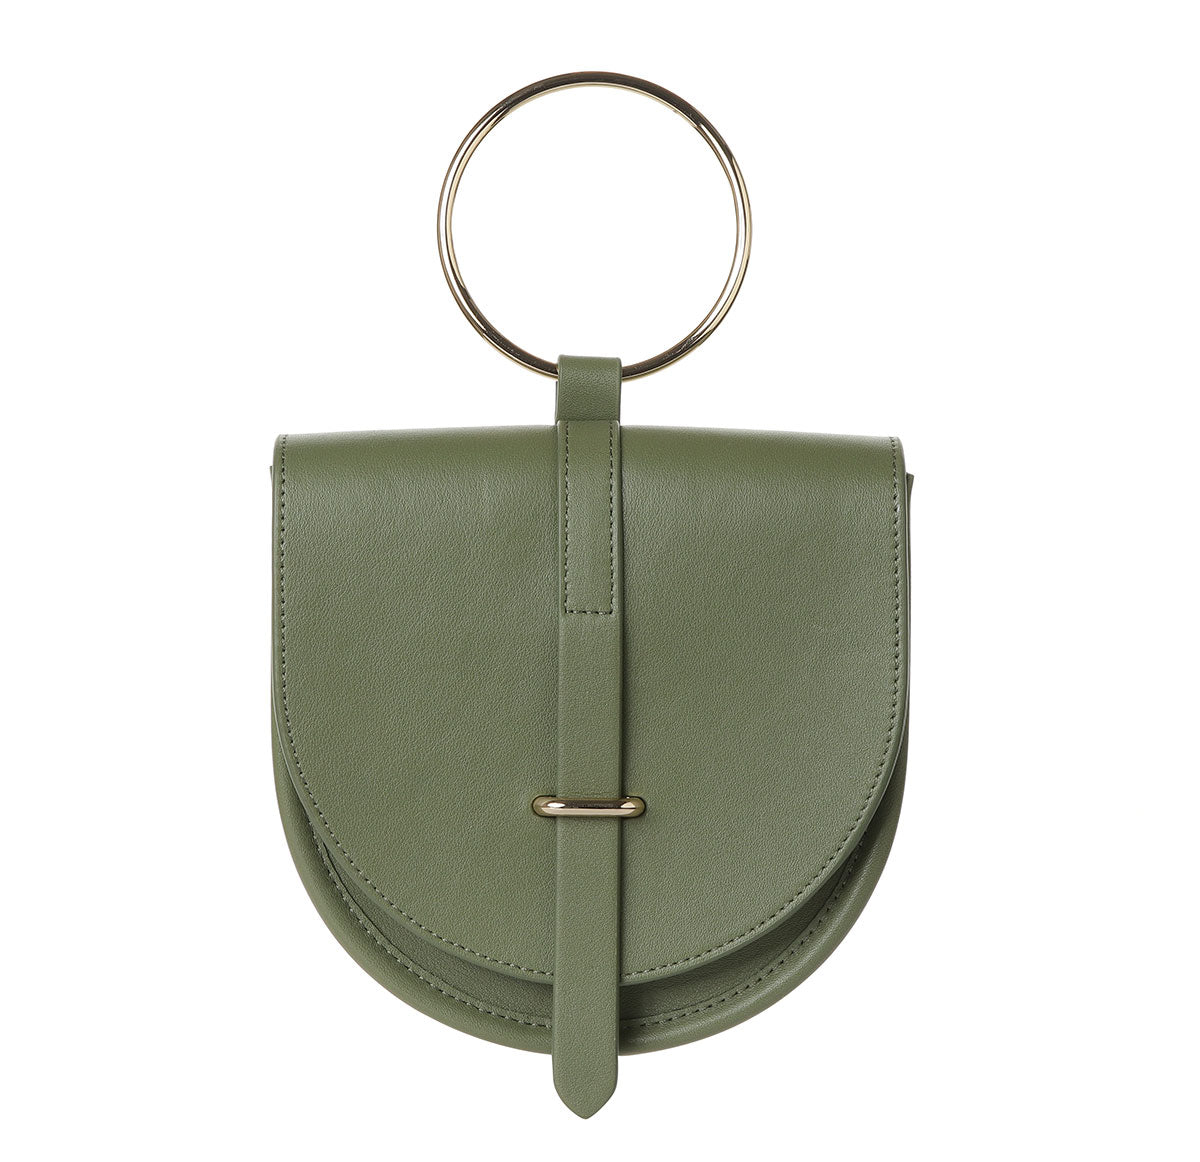 O-Ring Moss  Leather Handbag